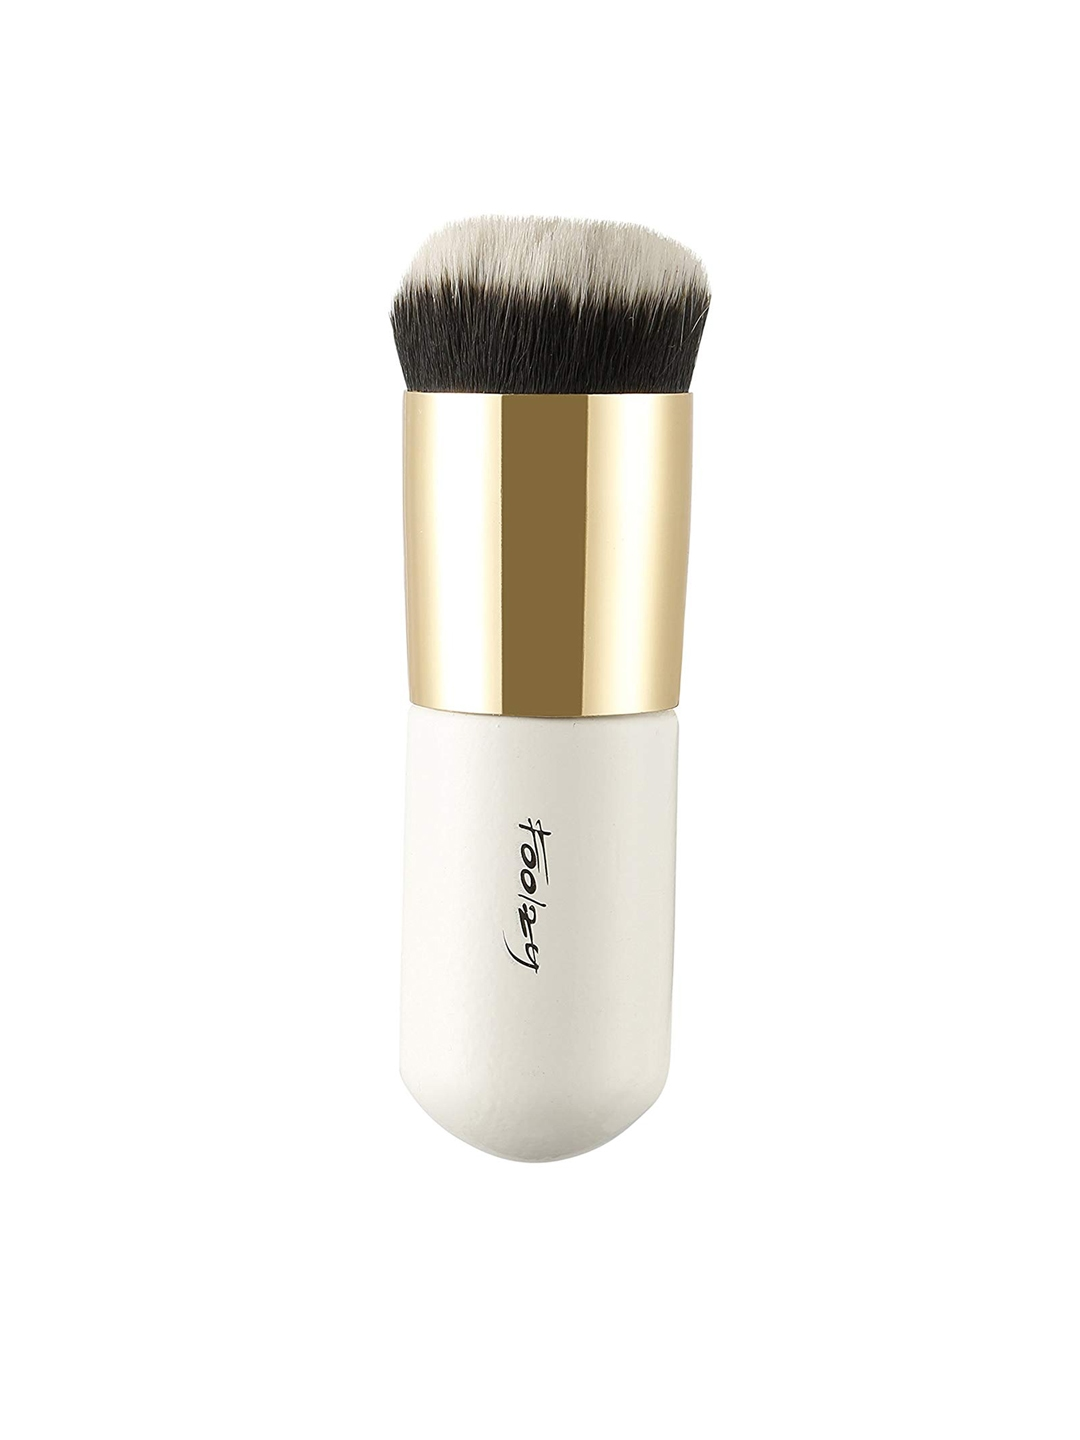 Foolzy Pick Me Up Makeup Brush BR 41A   White